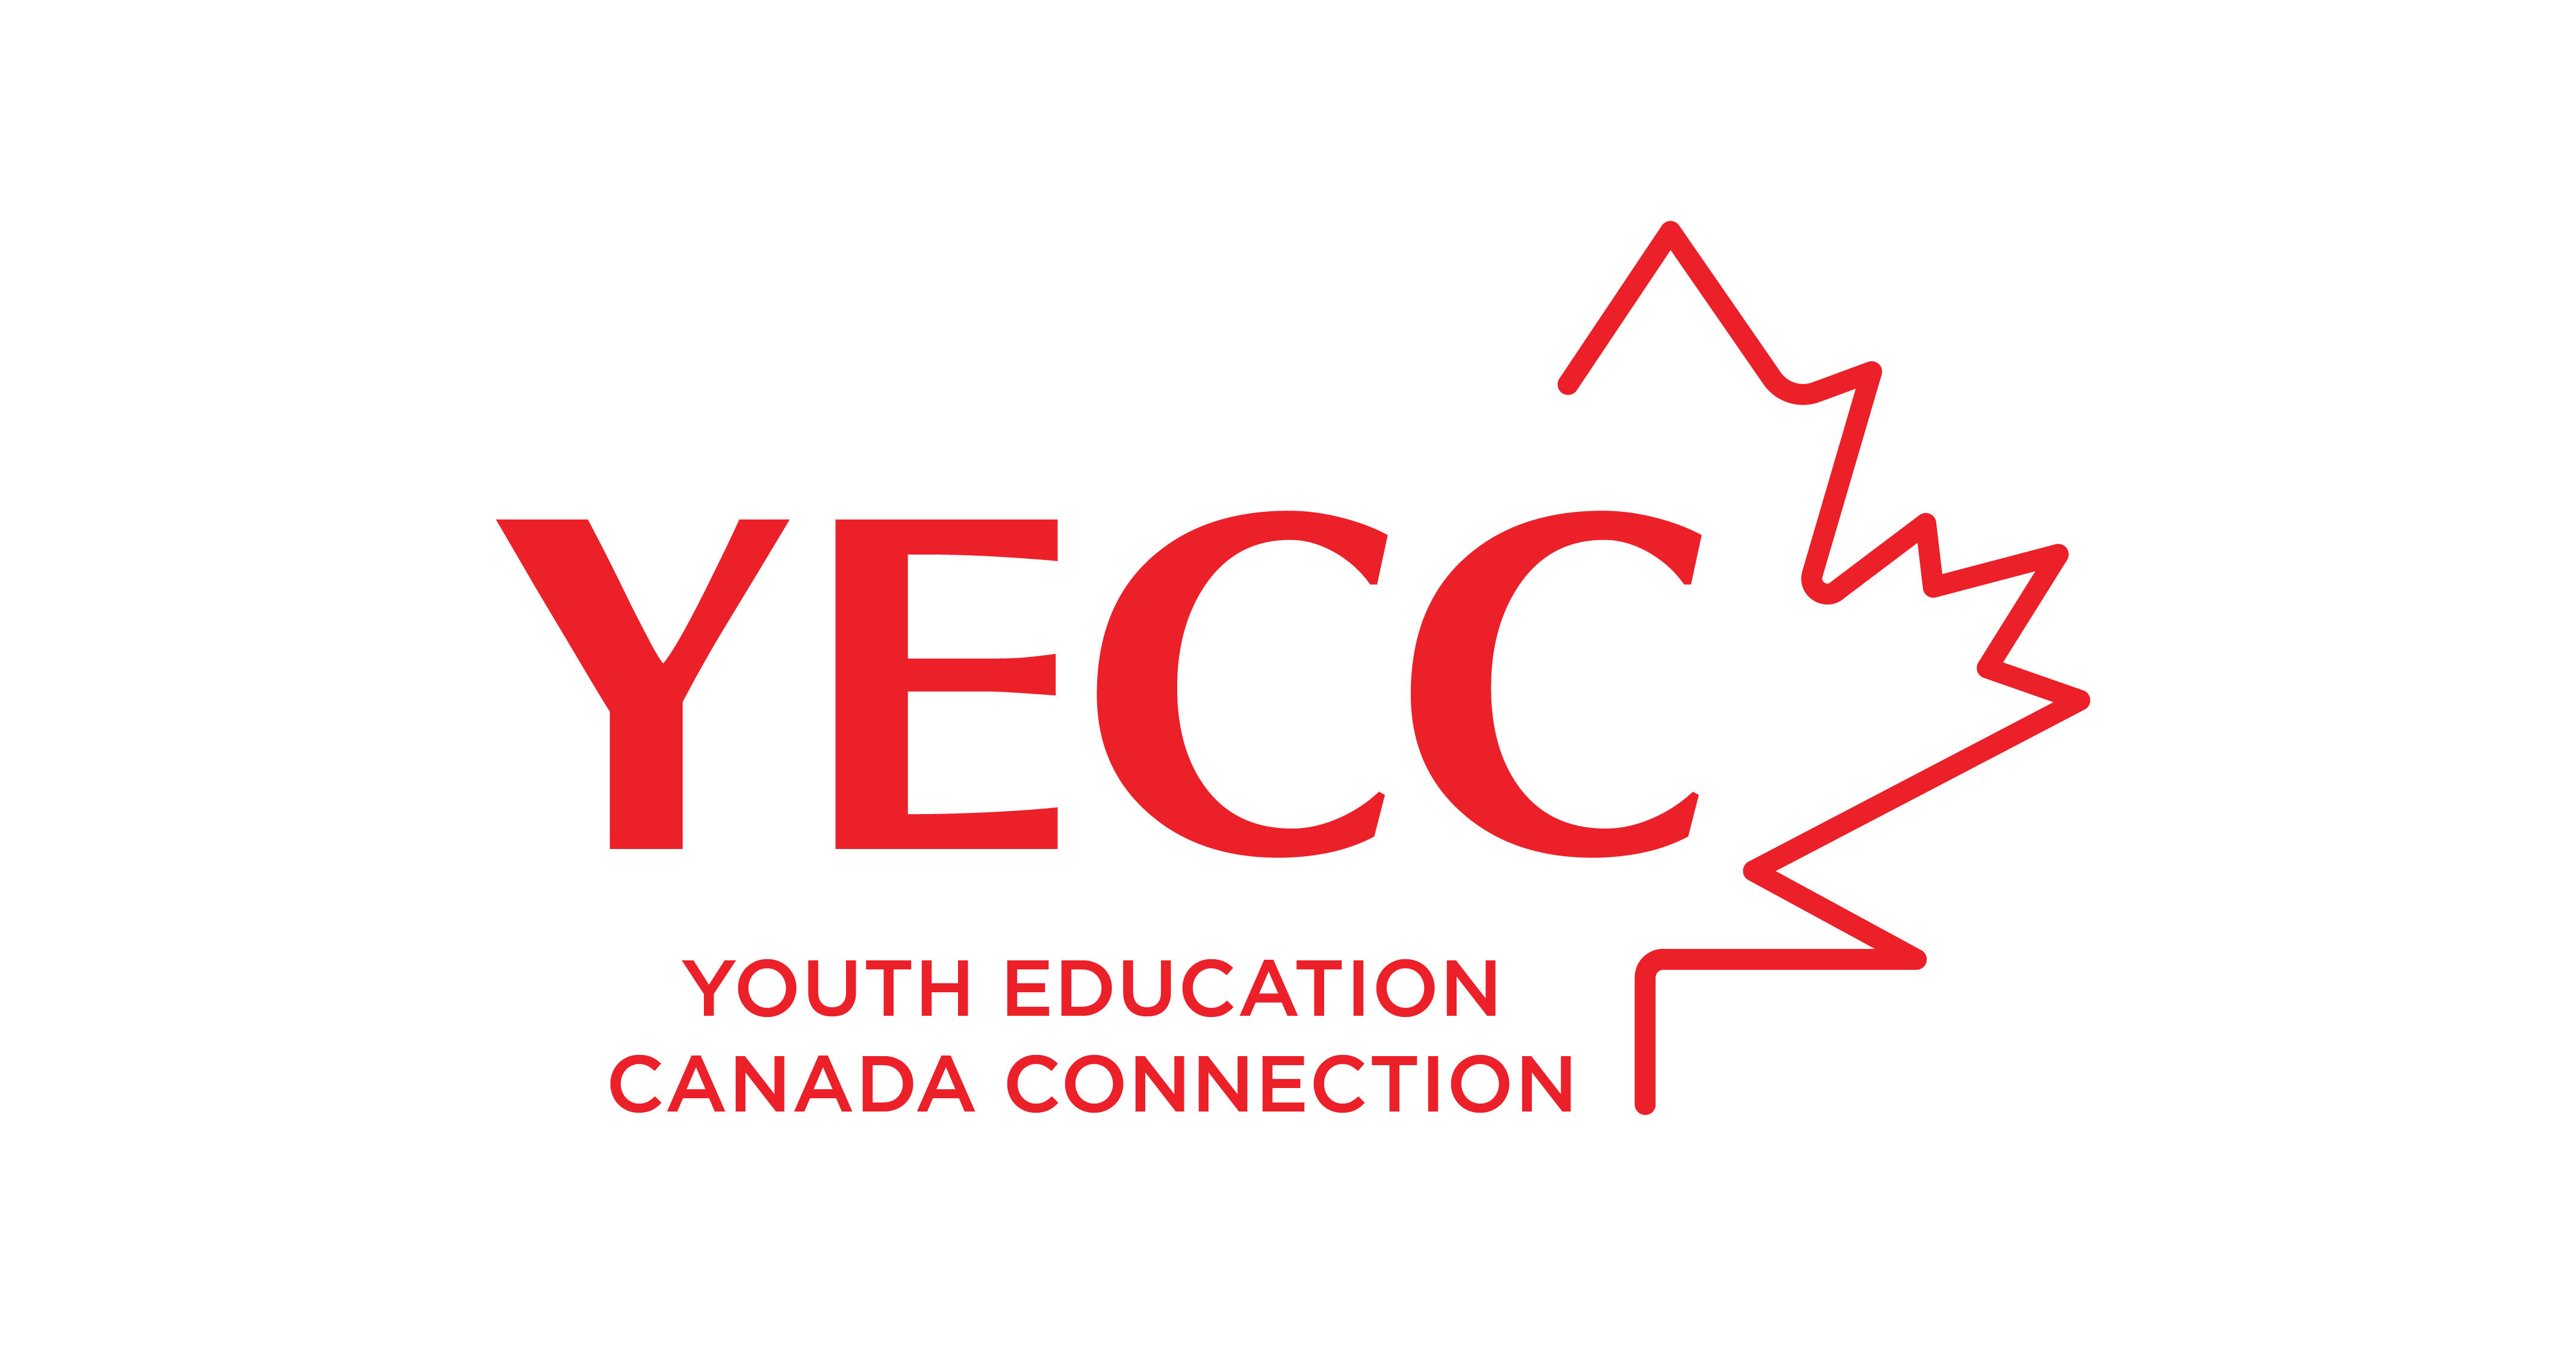 Youth Education Canada Connection